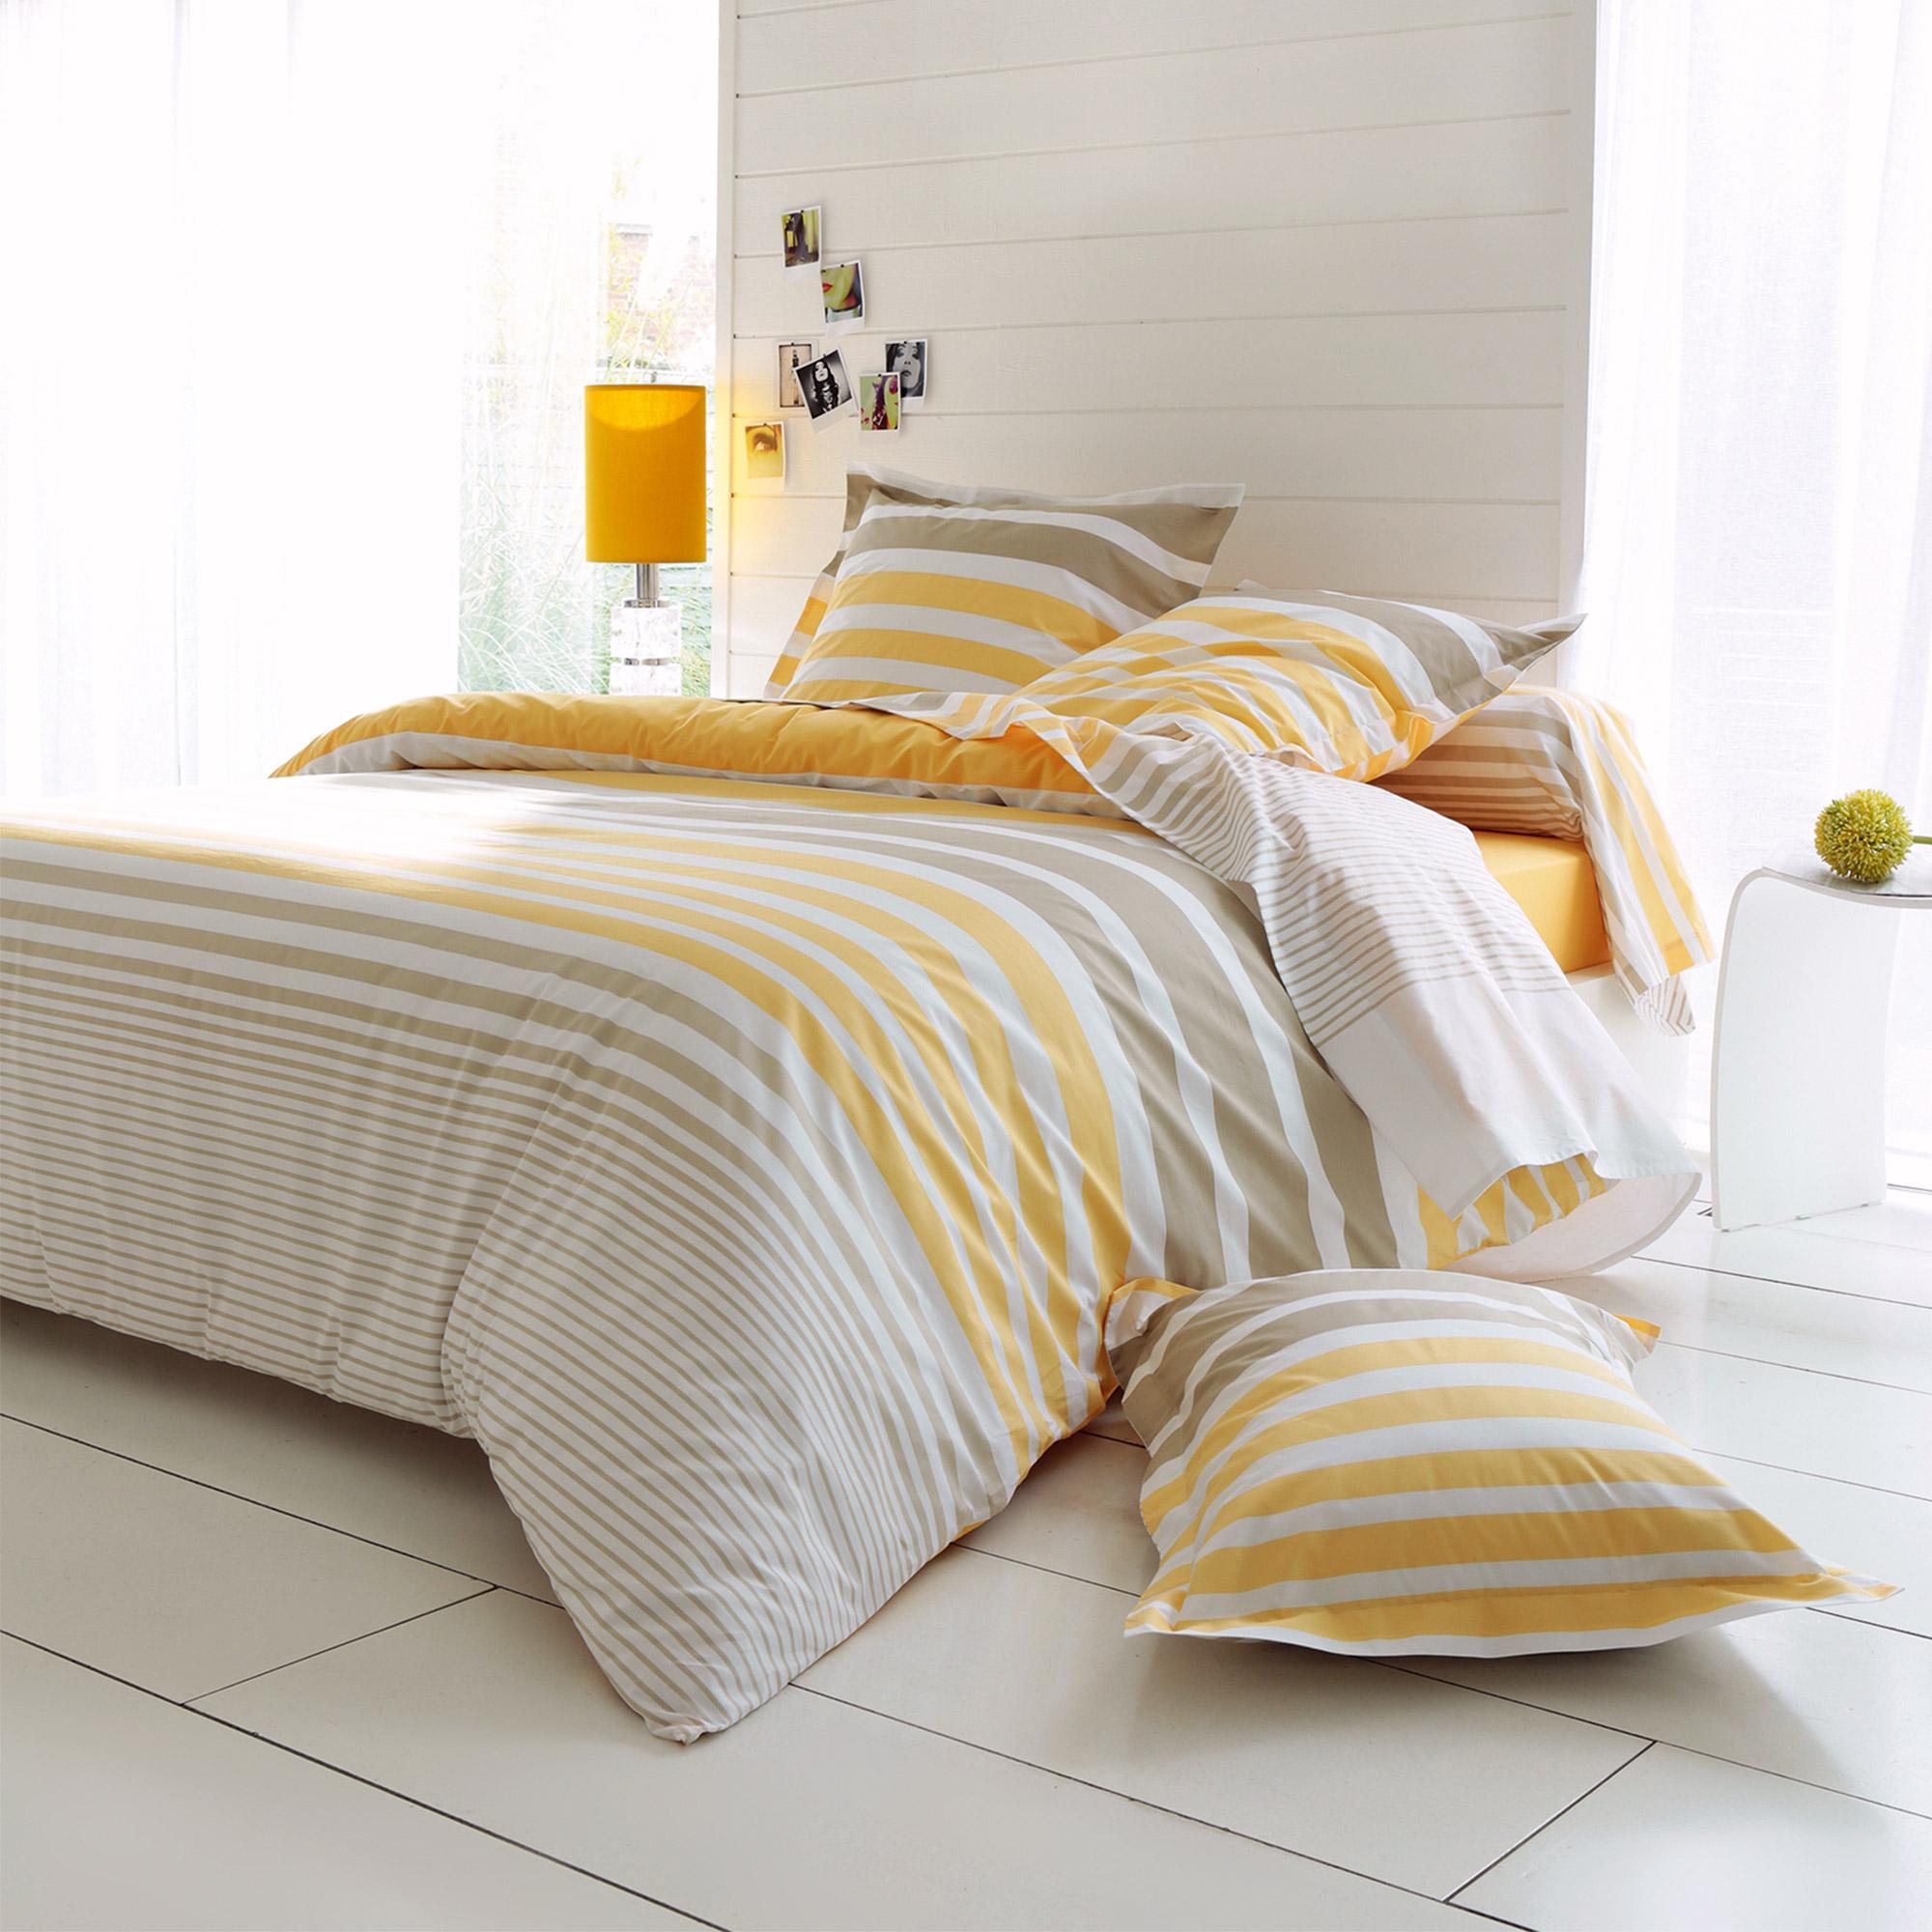 housse de couette 280x240 cm percale pur coton stripe narcisse jaune linnea vente de linge de. Black Bedroom Furniture Sets. Home Design Ideas